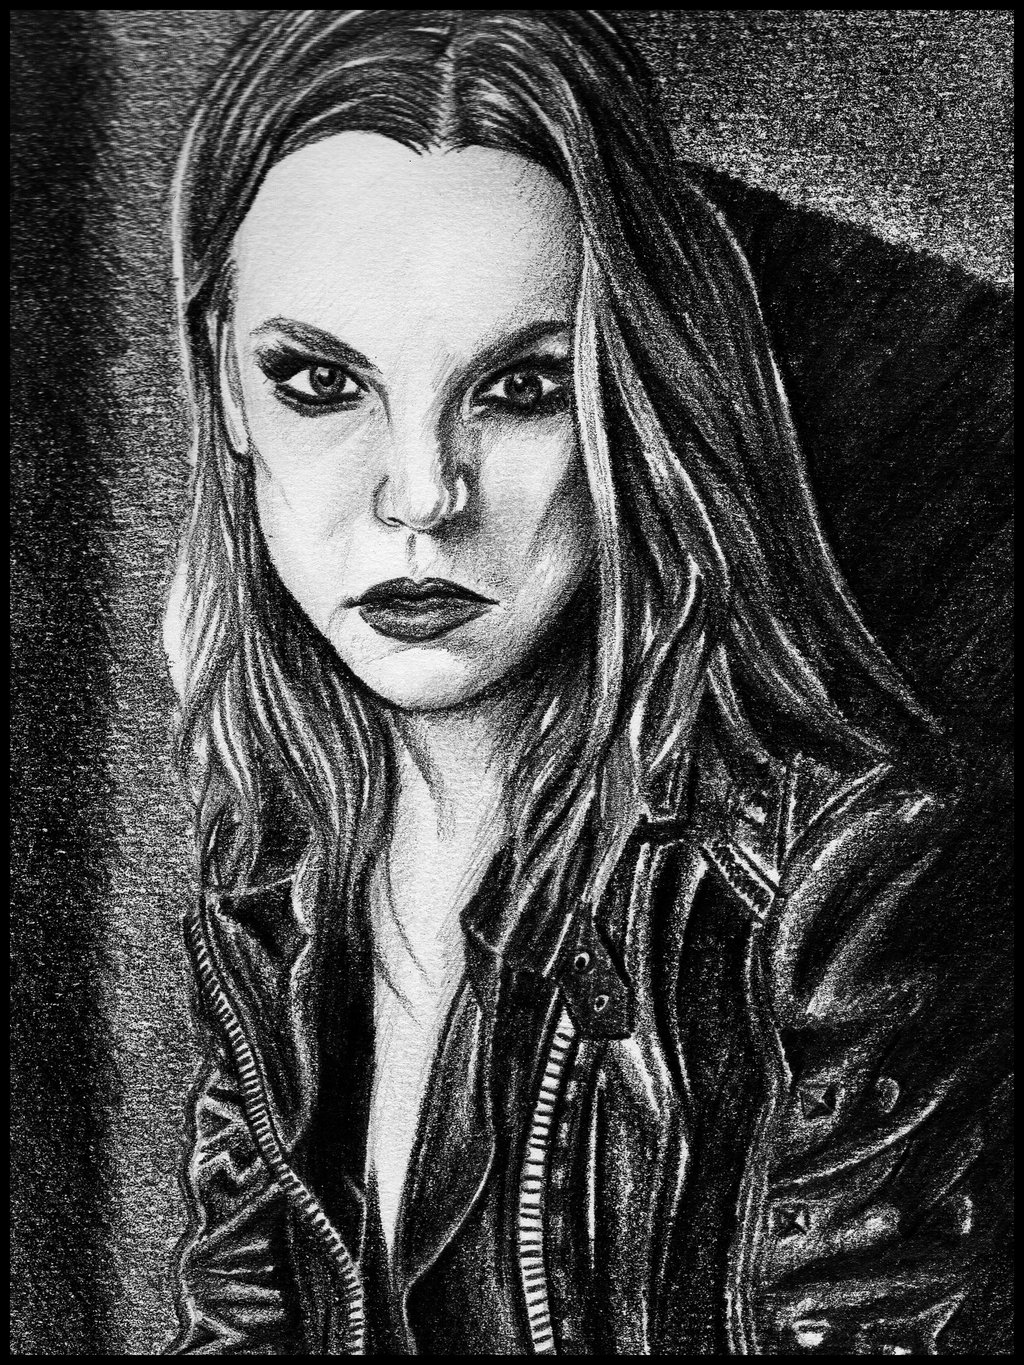 Free Download Lzzy Hale Latest News Photos Biography Videos